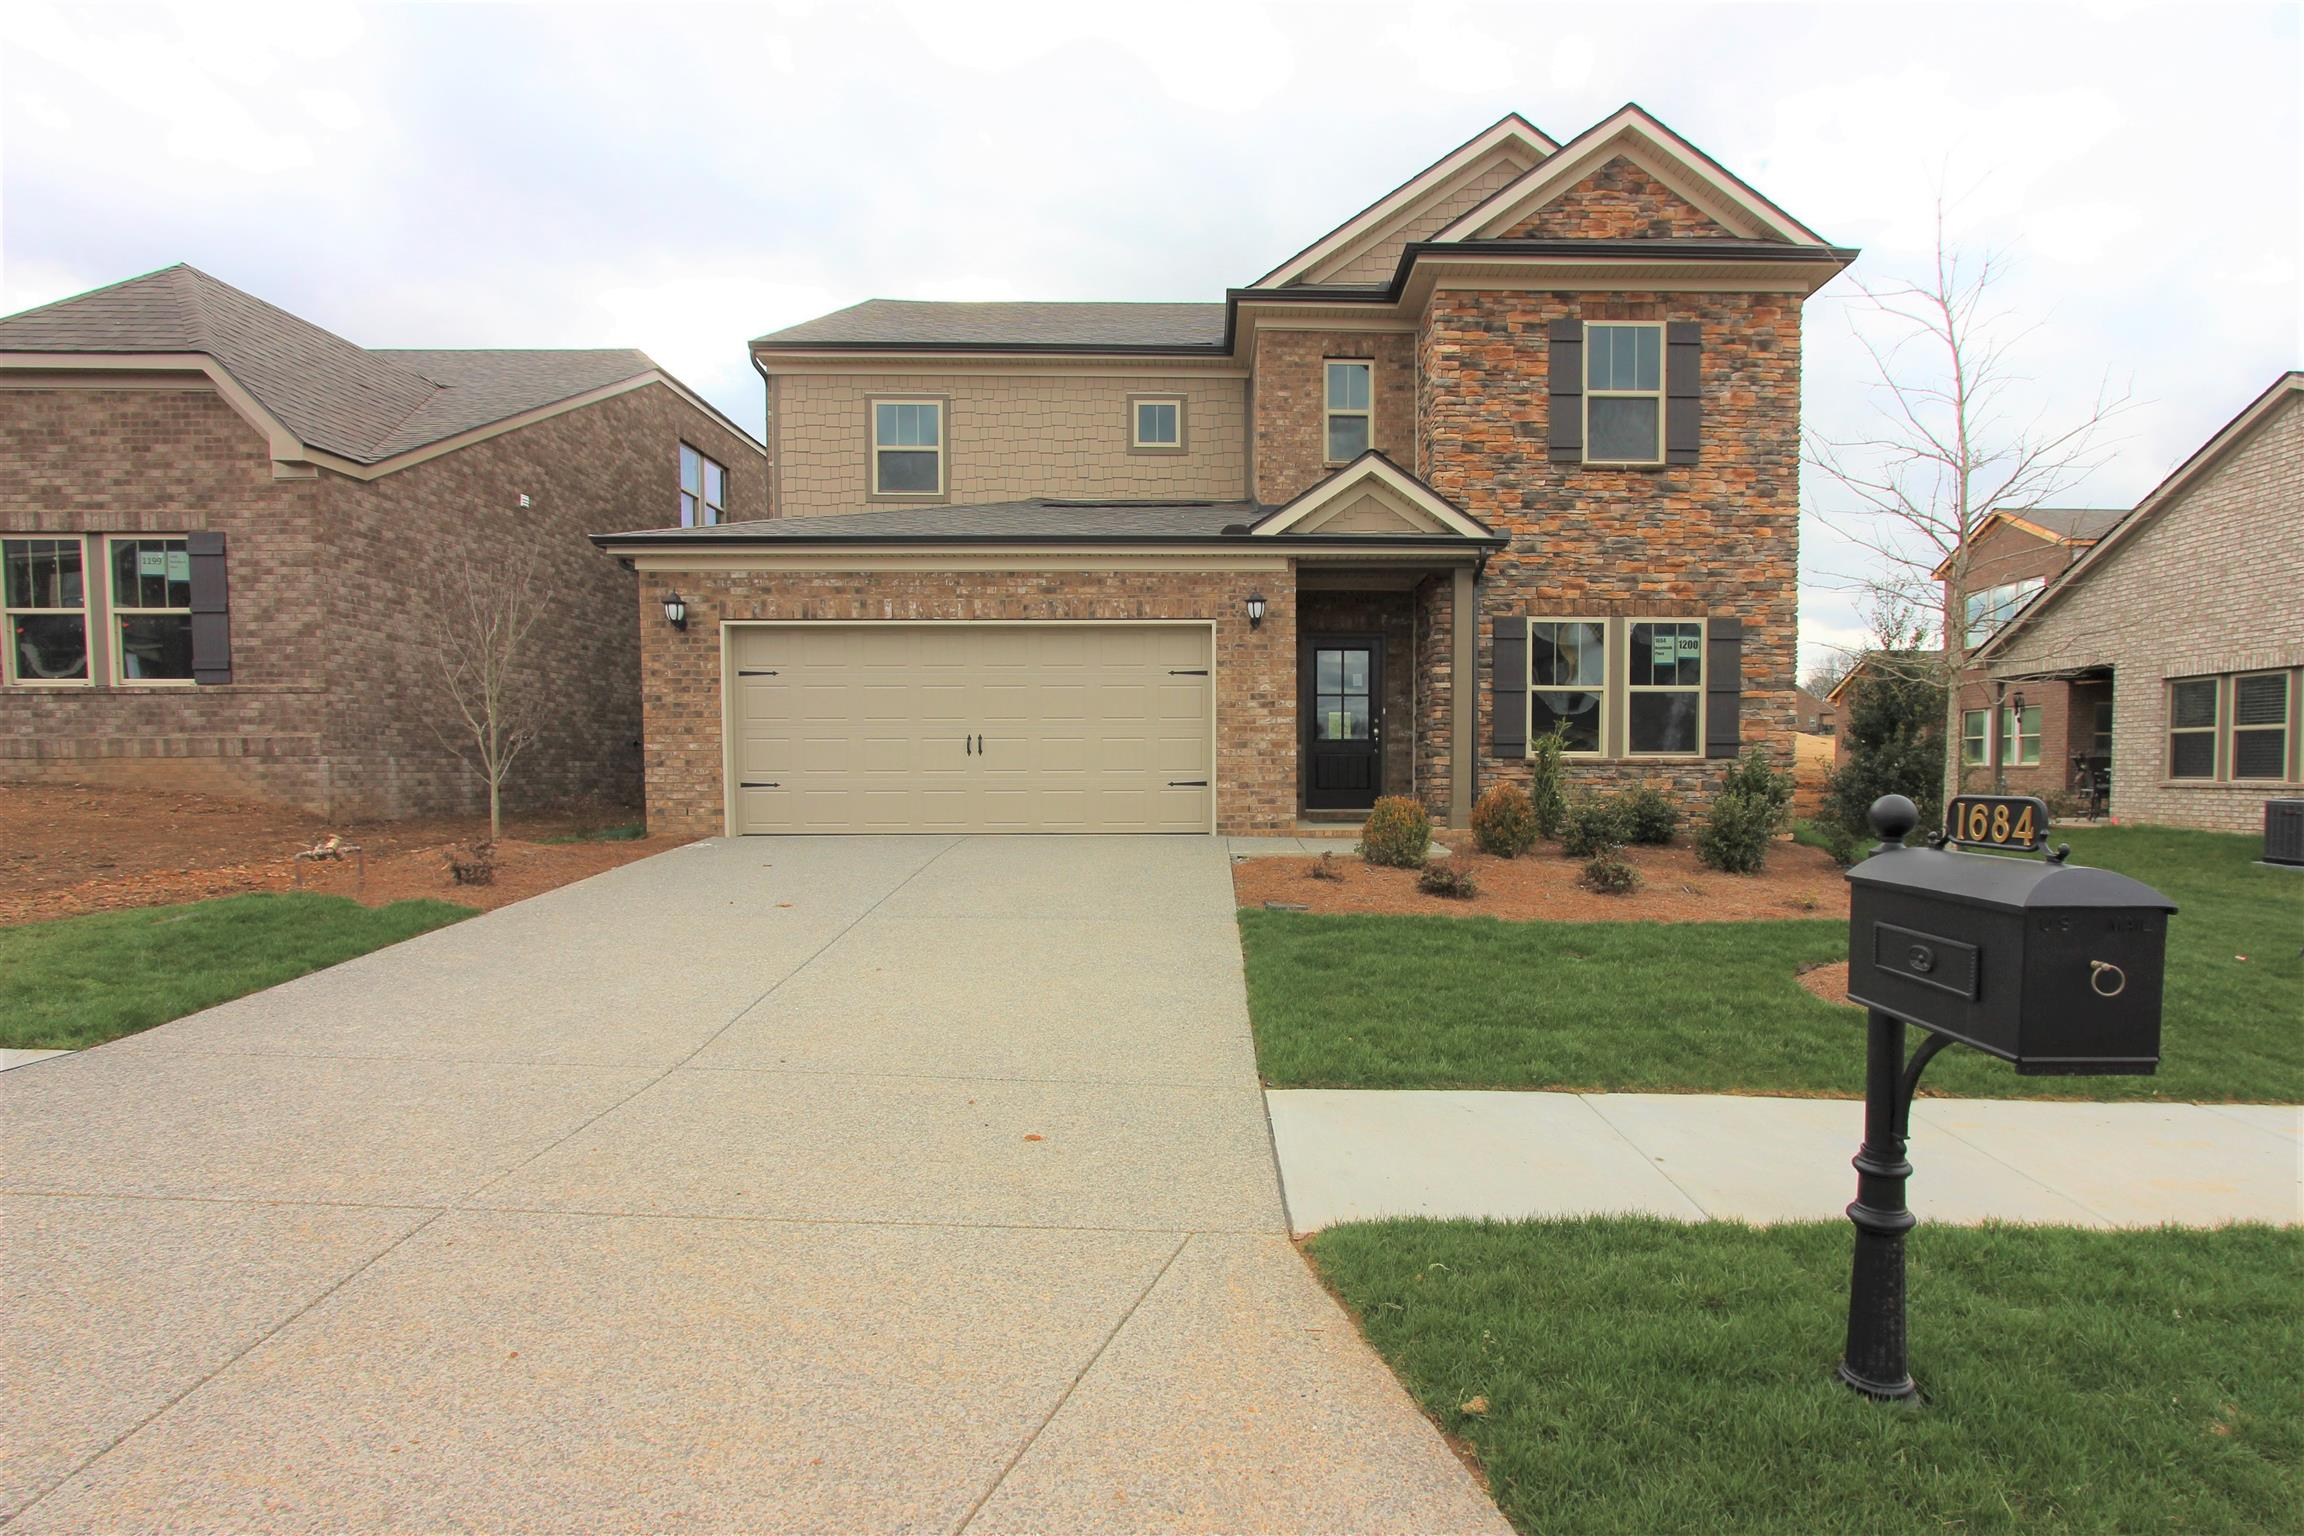 1684 Boardwalk Pl 37066 - One of Gallatin Homes for Sale